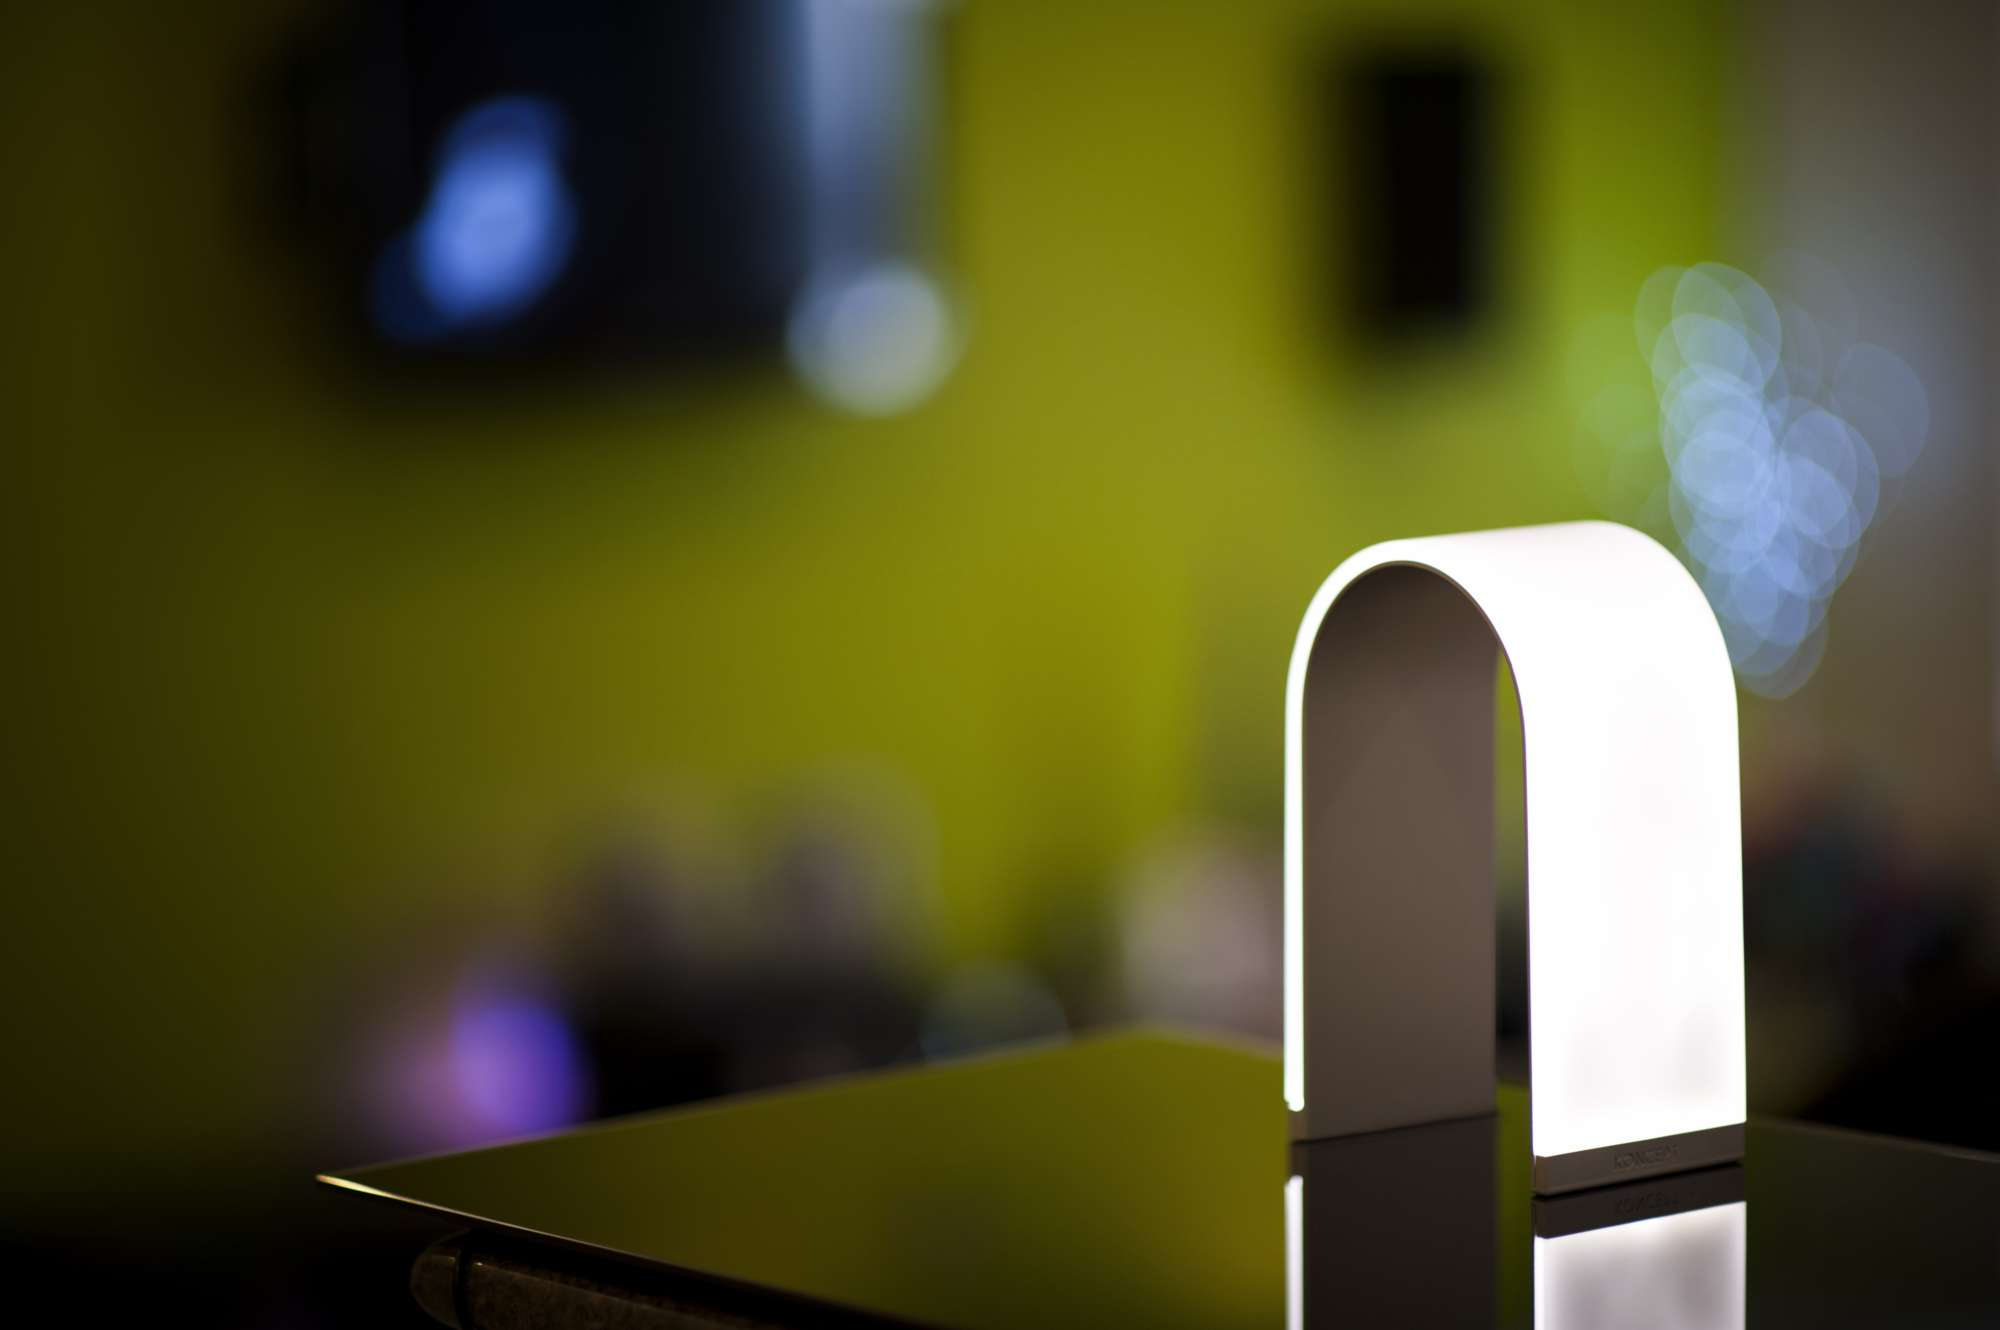 Little lamp.Big personality. - The unique, ultra thin arch shape is unlike any other lamp design.